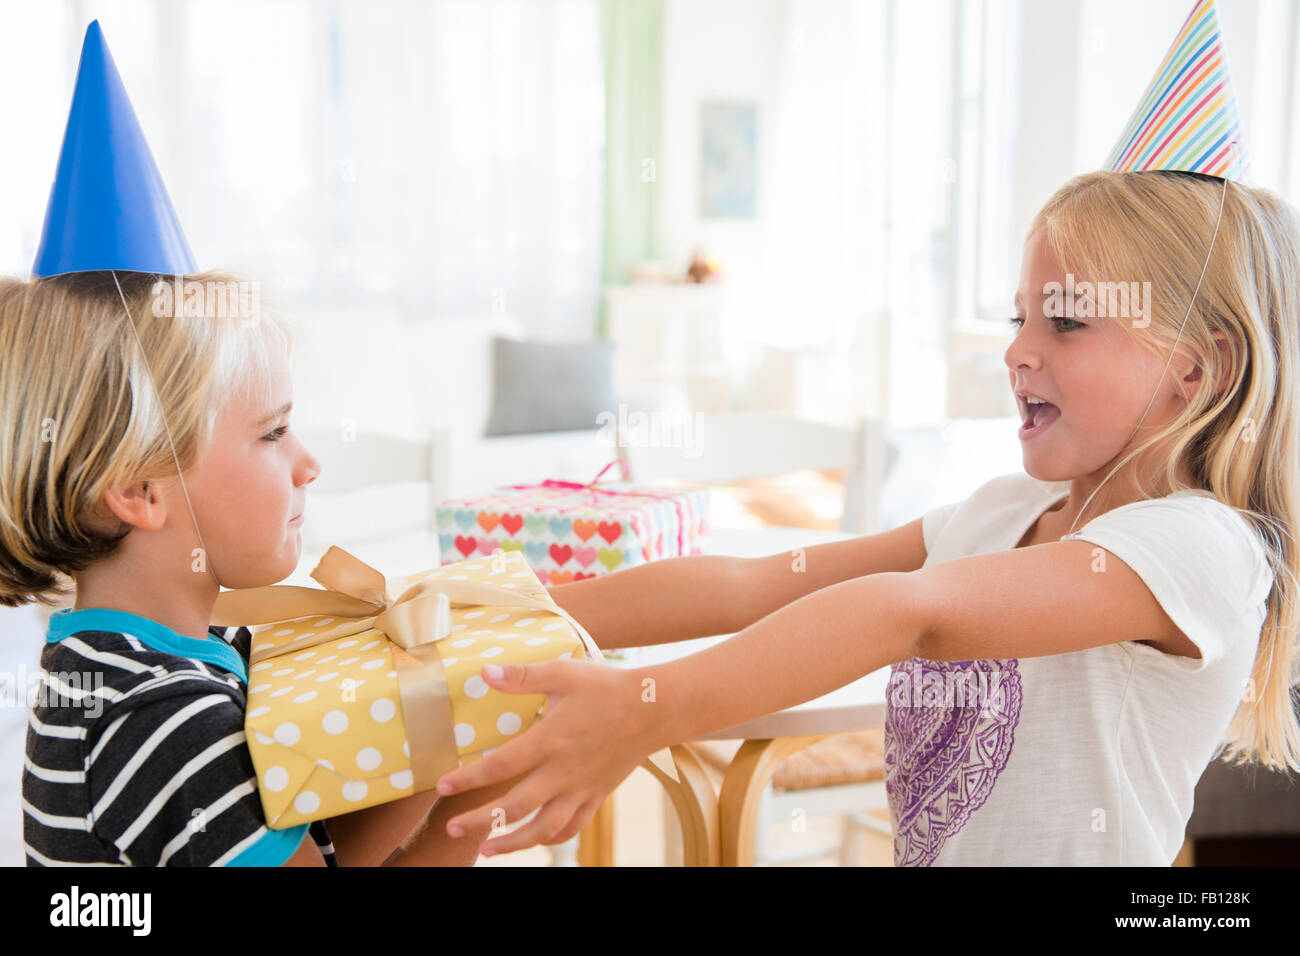 Sister 6 7 Giving Birthday Present To Brother 4 5